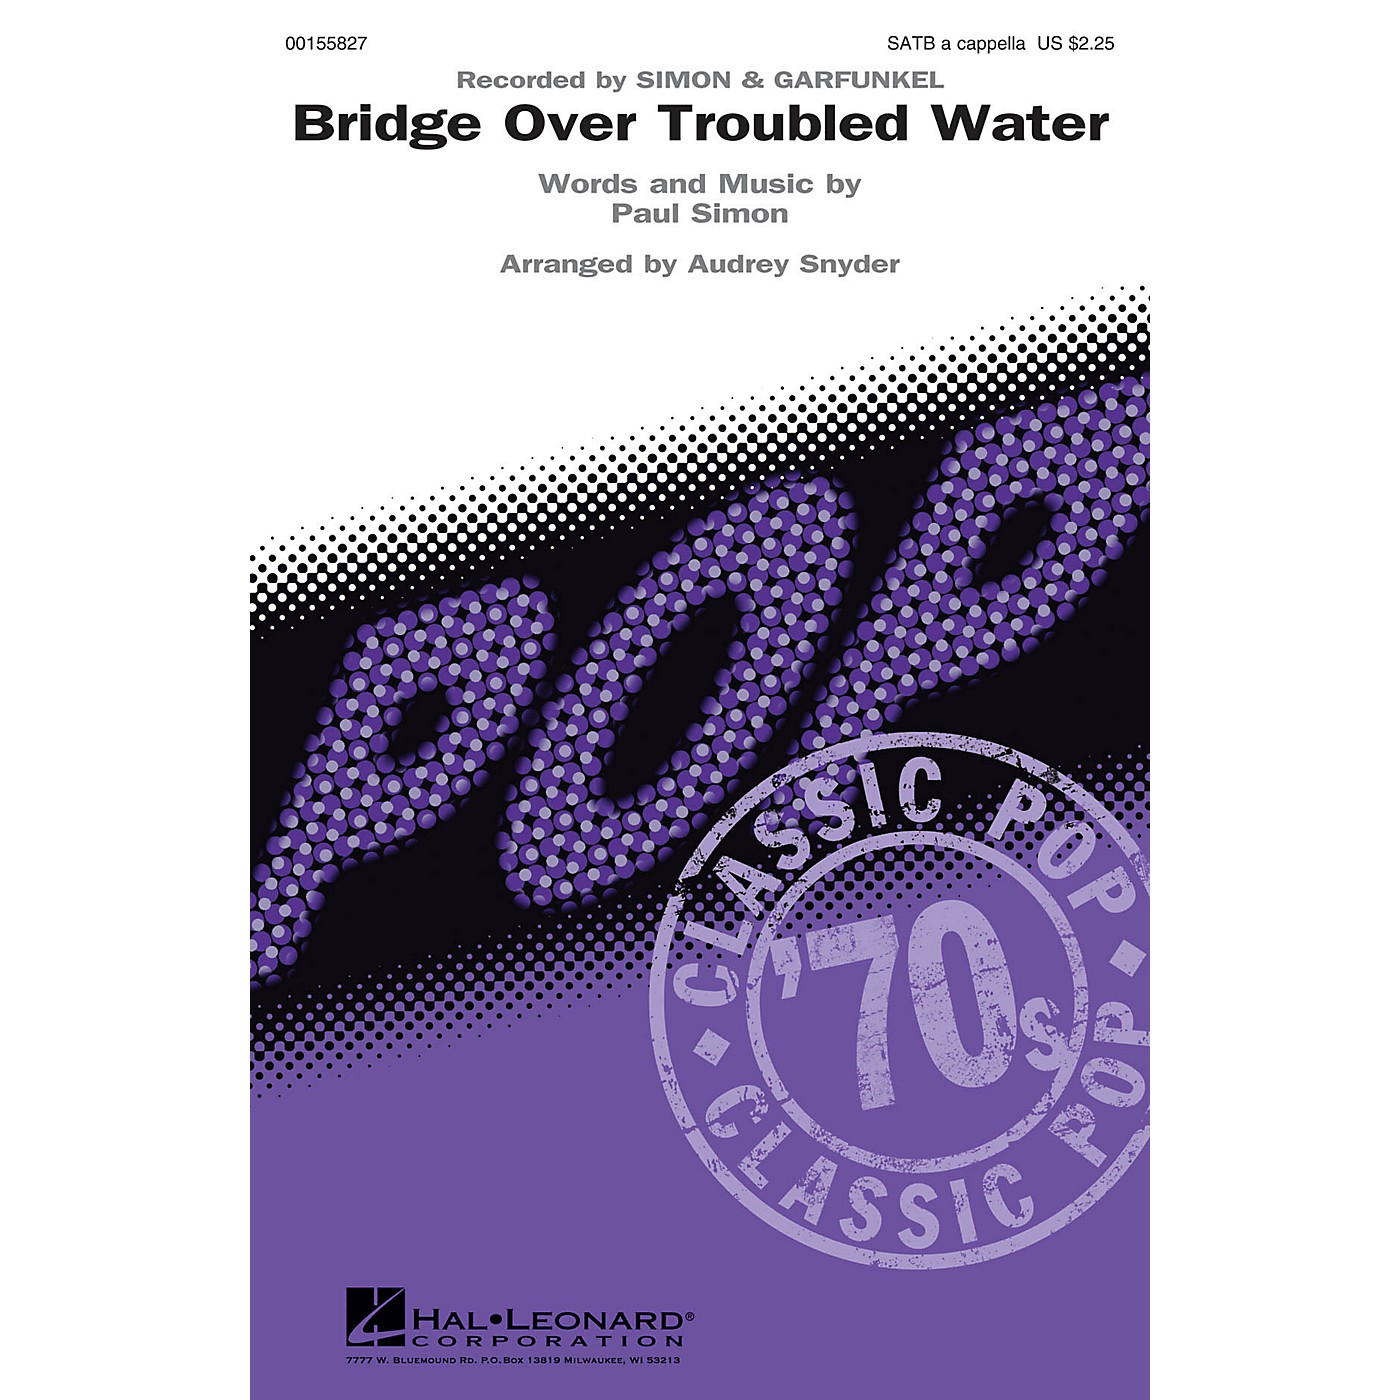 Hal Leonard Bridge Over Troubled Water SATB a cappella by Simon & Garfunkel arranged by Audrey Snyder thumbnail